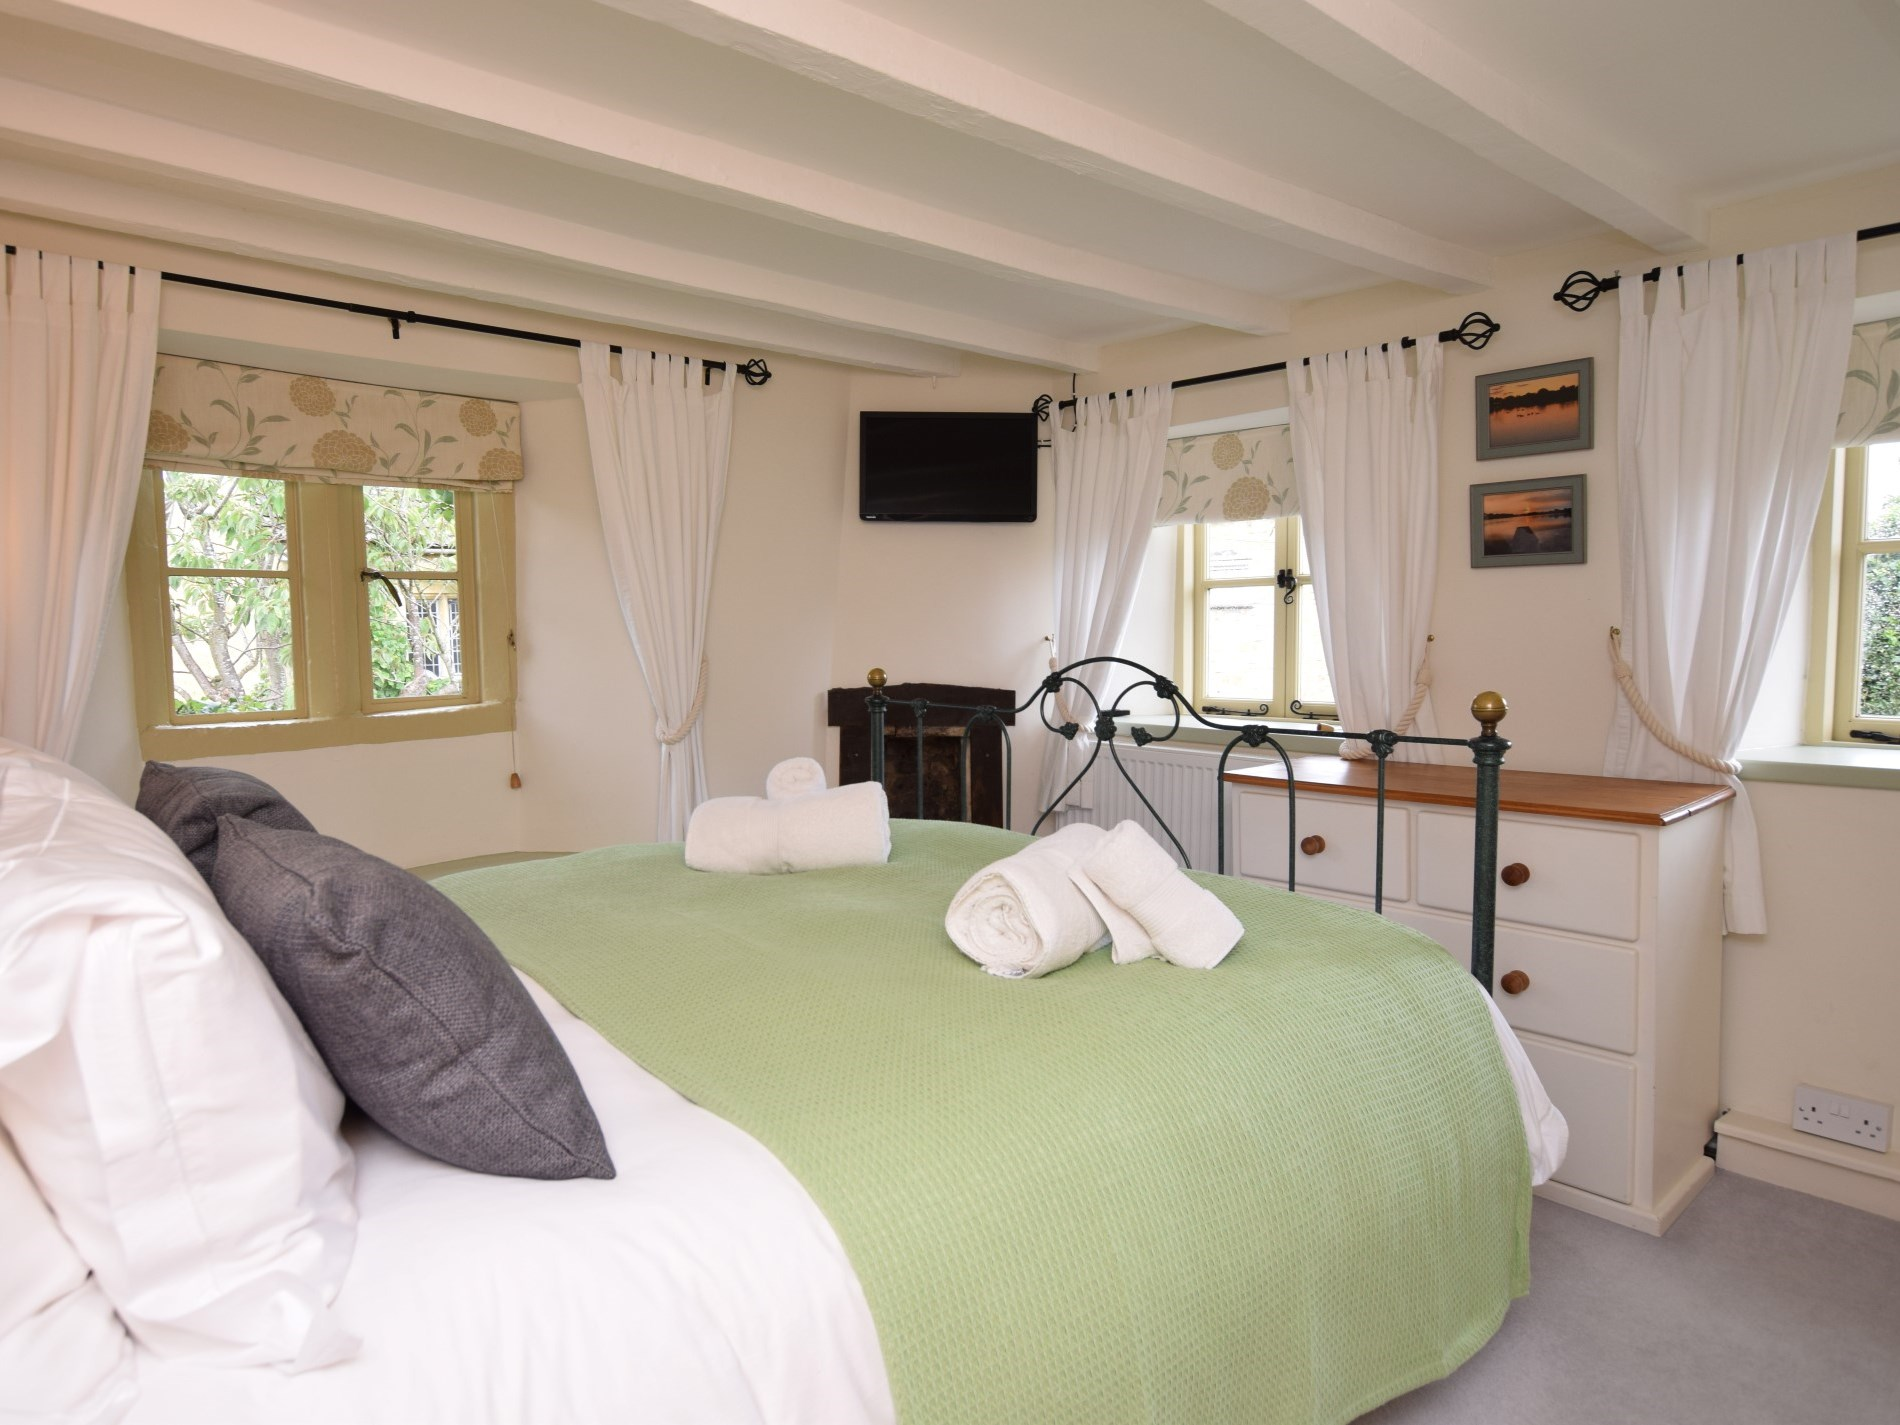 Double bed and luxurious egyptian cotton linen